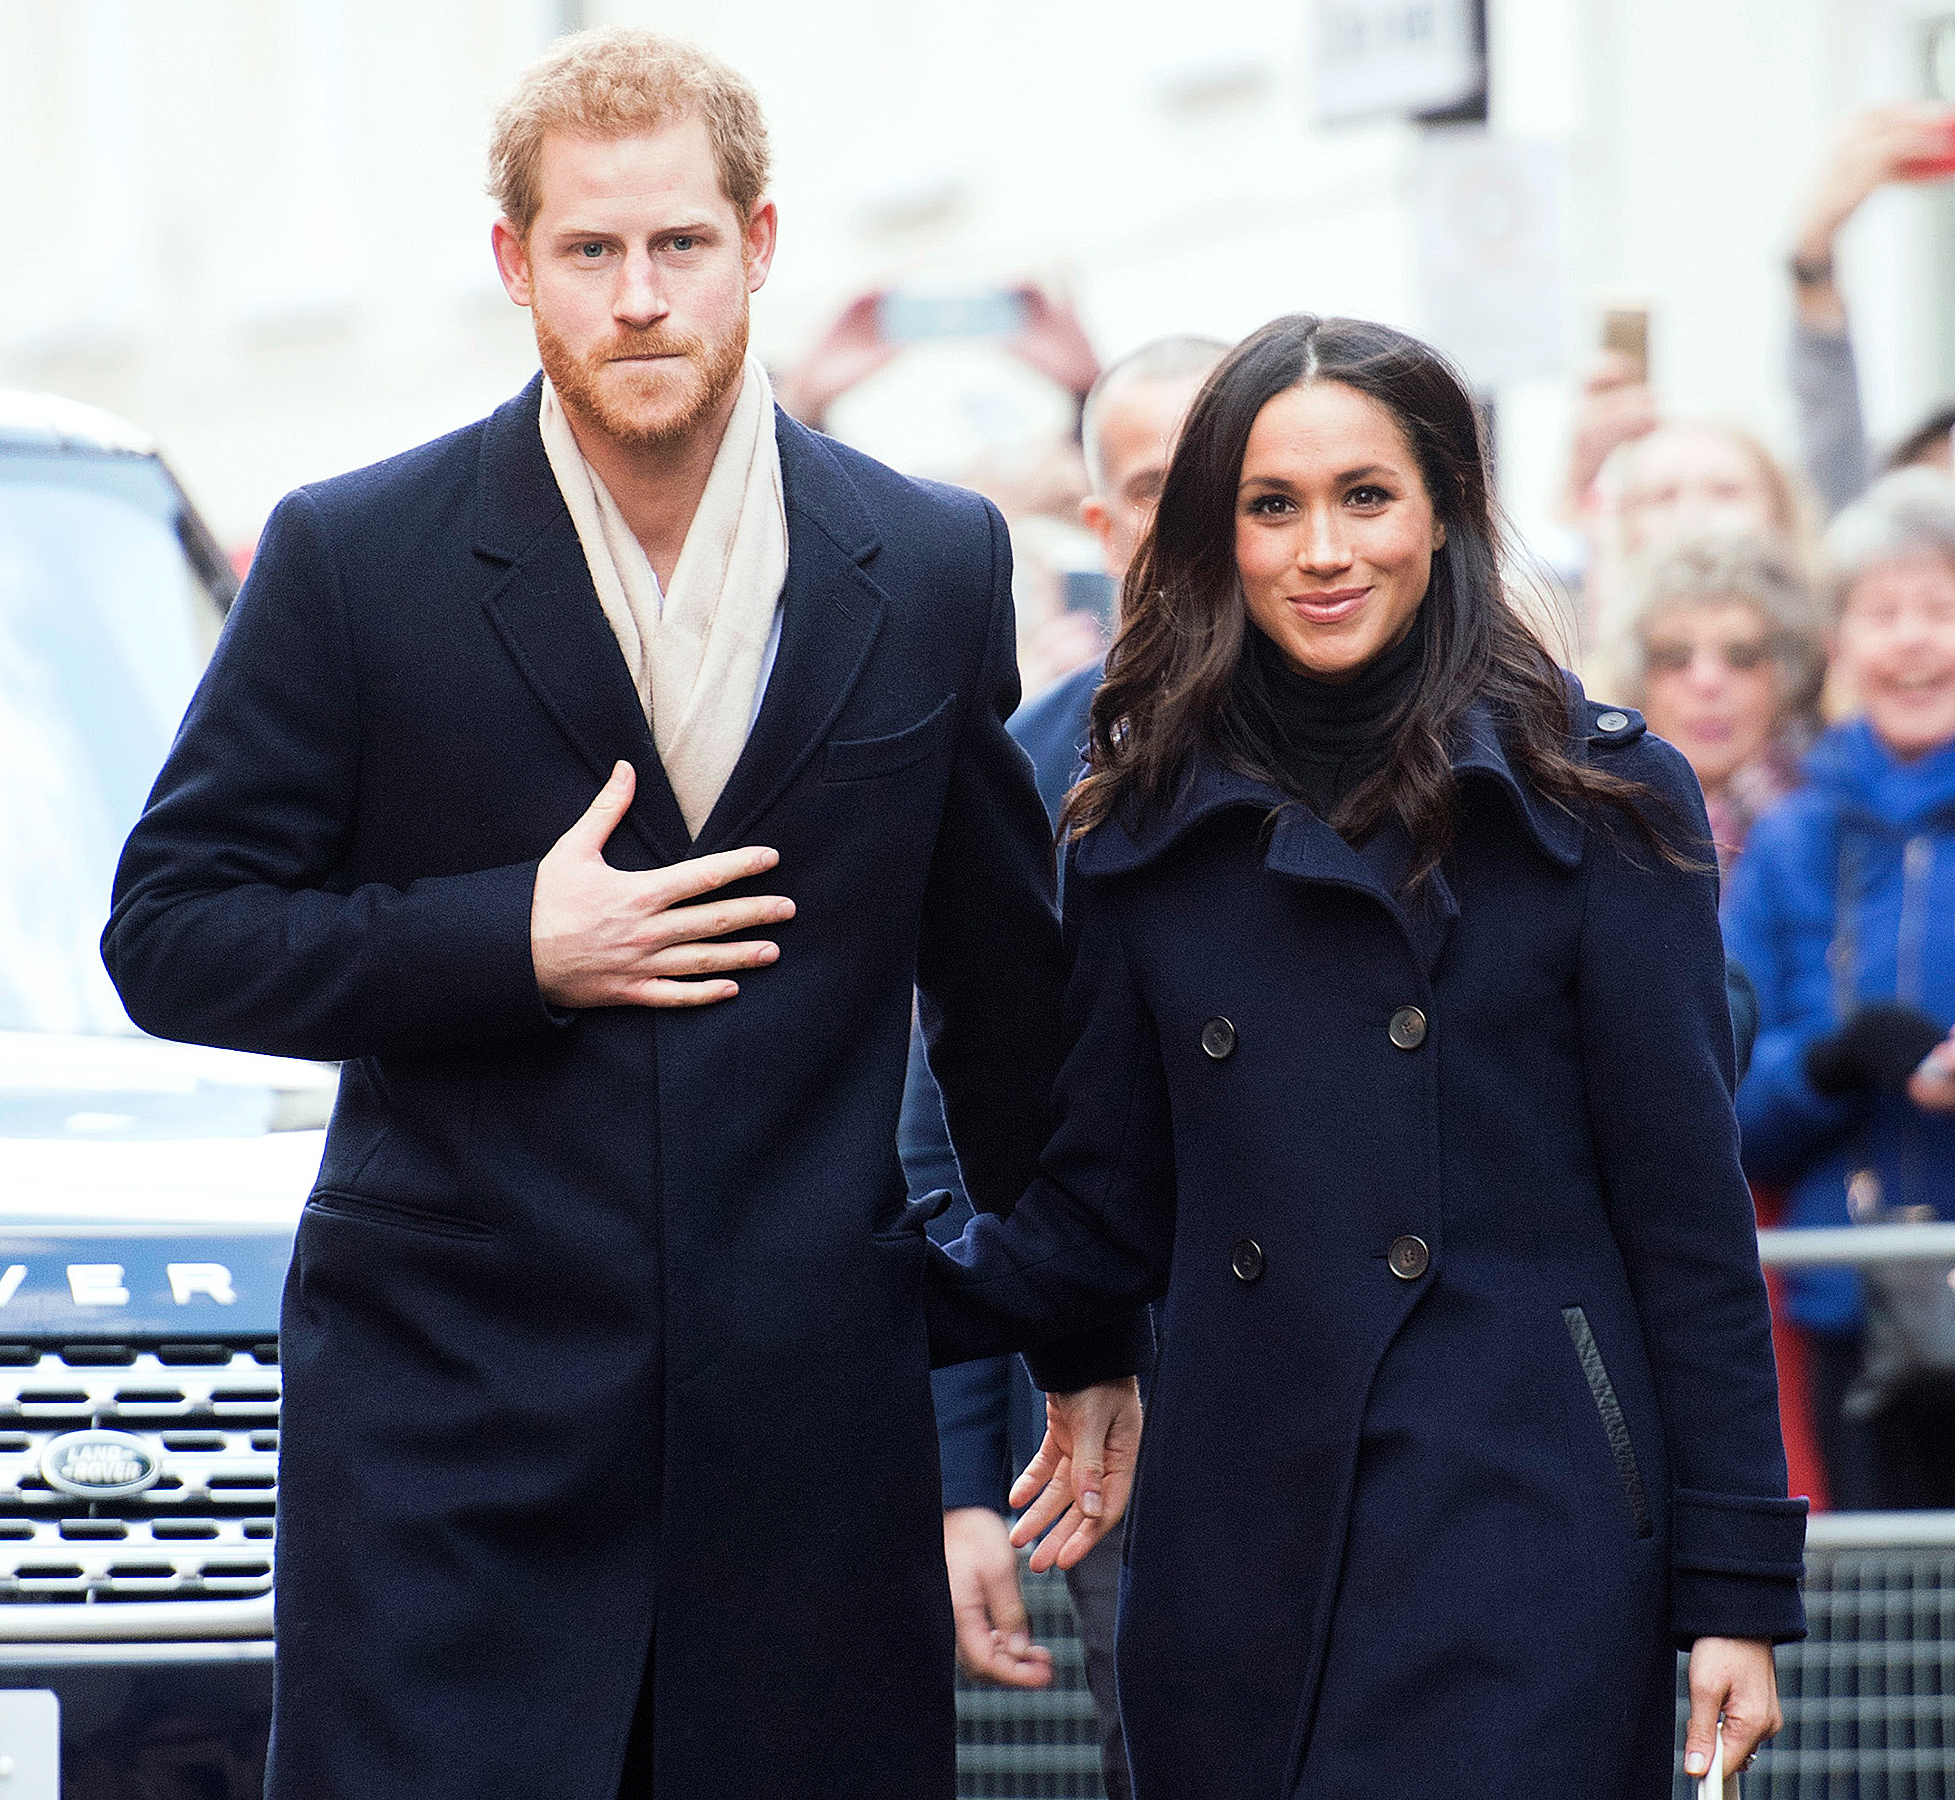 Prince Harry Meghan Markle What Guests May Be Served